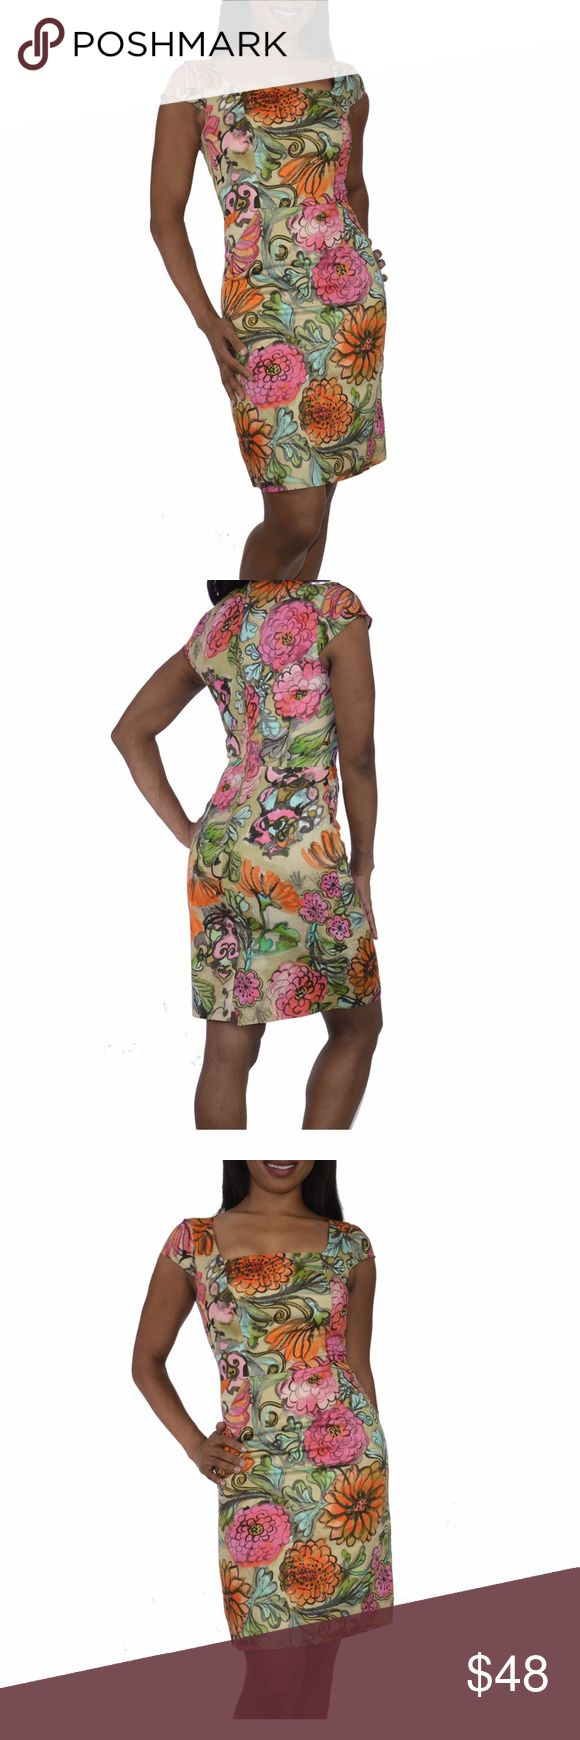 Authentic Milly floral sheath dress bright floral Size 0 -Milly - EUC-Excellent Pre-owned Condition- no tears snags etc. I'm (pictured) 5'2 and normally wear a size 4 & this fit me though it is definitely very snug so it should be perfection on a size 2 or zero. This stylish cap sleeve dress features a flattering bright floral pattern.. It can easily work for day or night and shows just a bit of cleavage. There is a 3 inch vent at the back bottom so its easy to walk in and you should let…